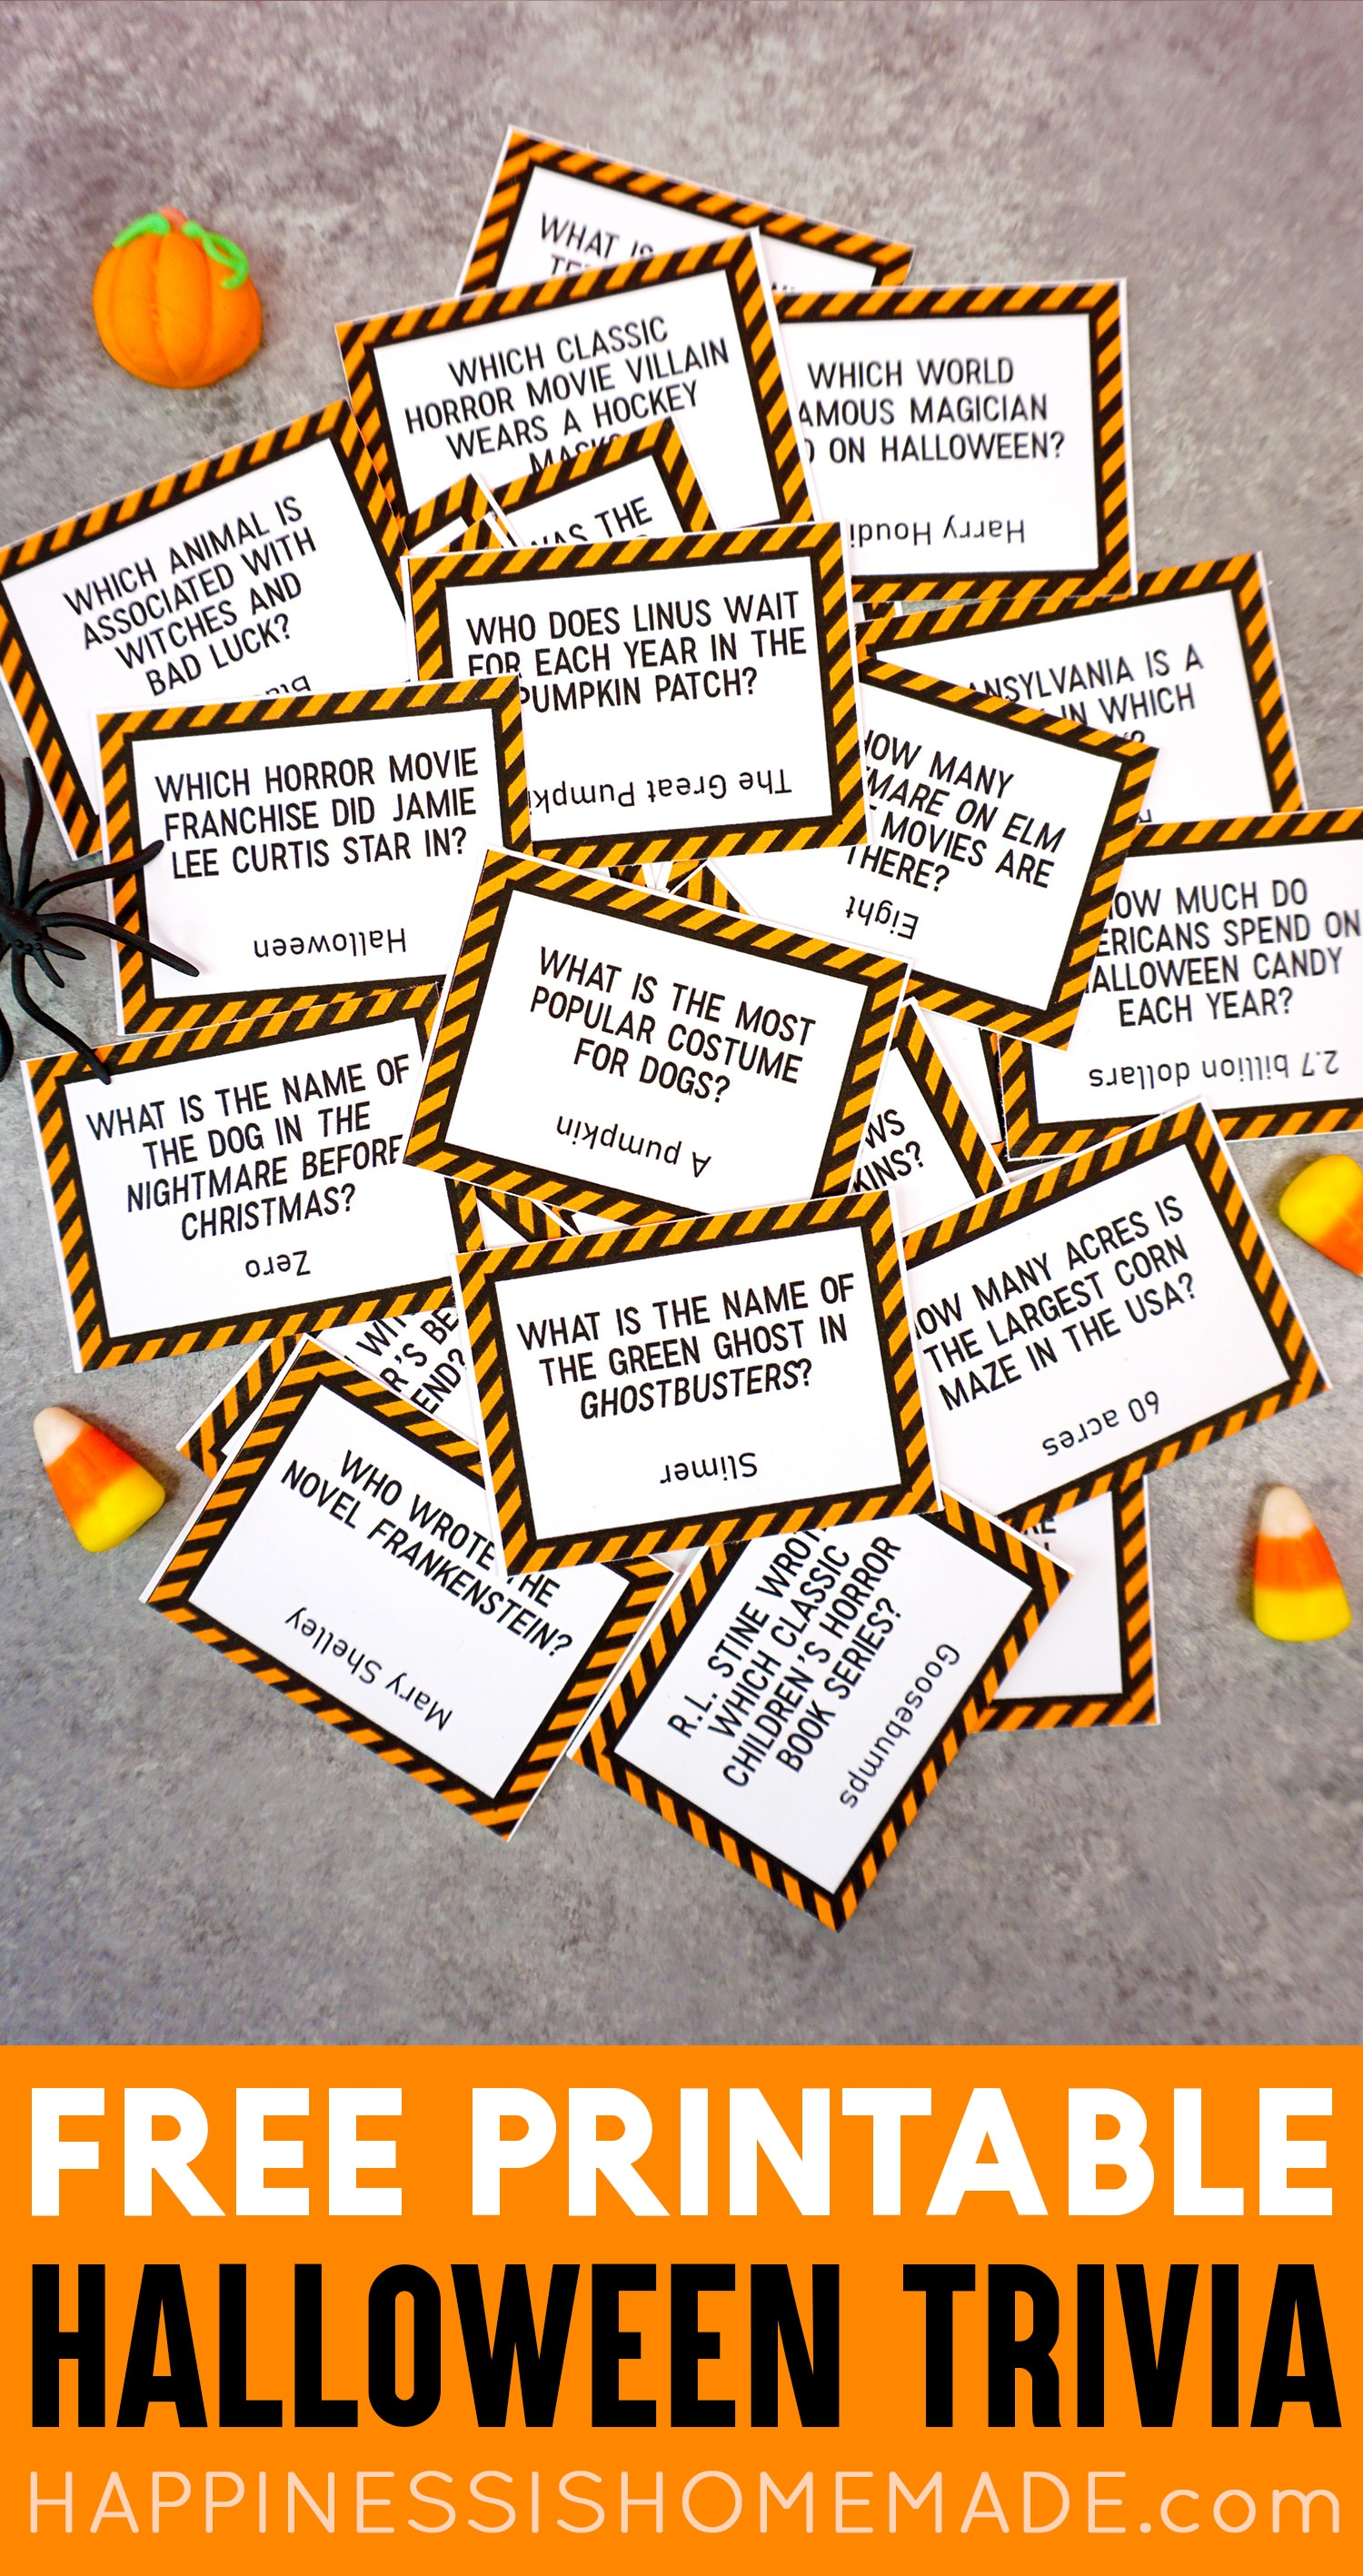 image relating to Halloween Trivia Questions and Answers Free Printable identify Printable Halloween Trivia Video game - Contentment is Home made